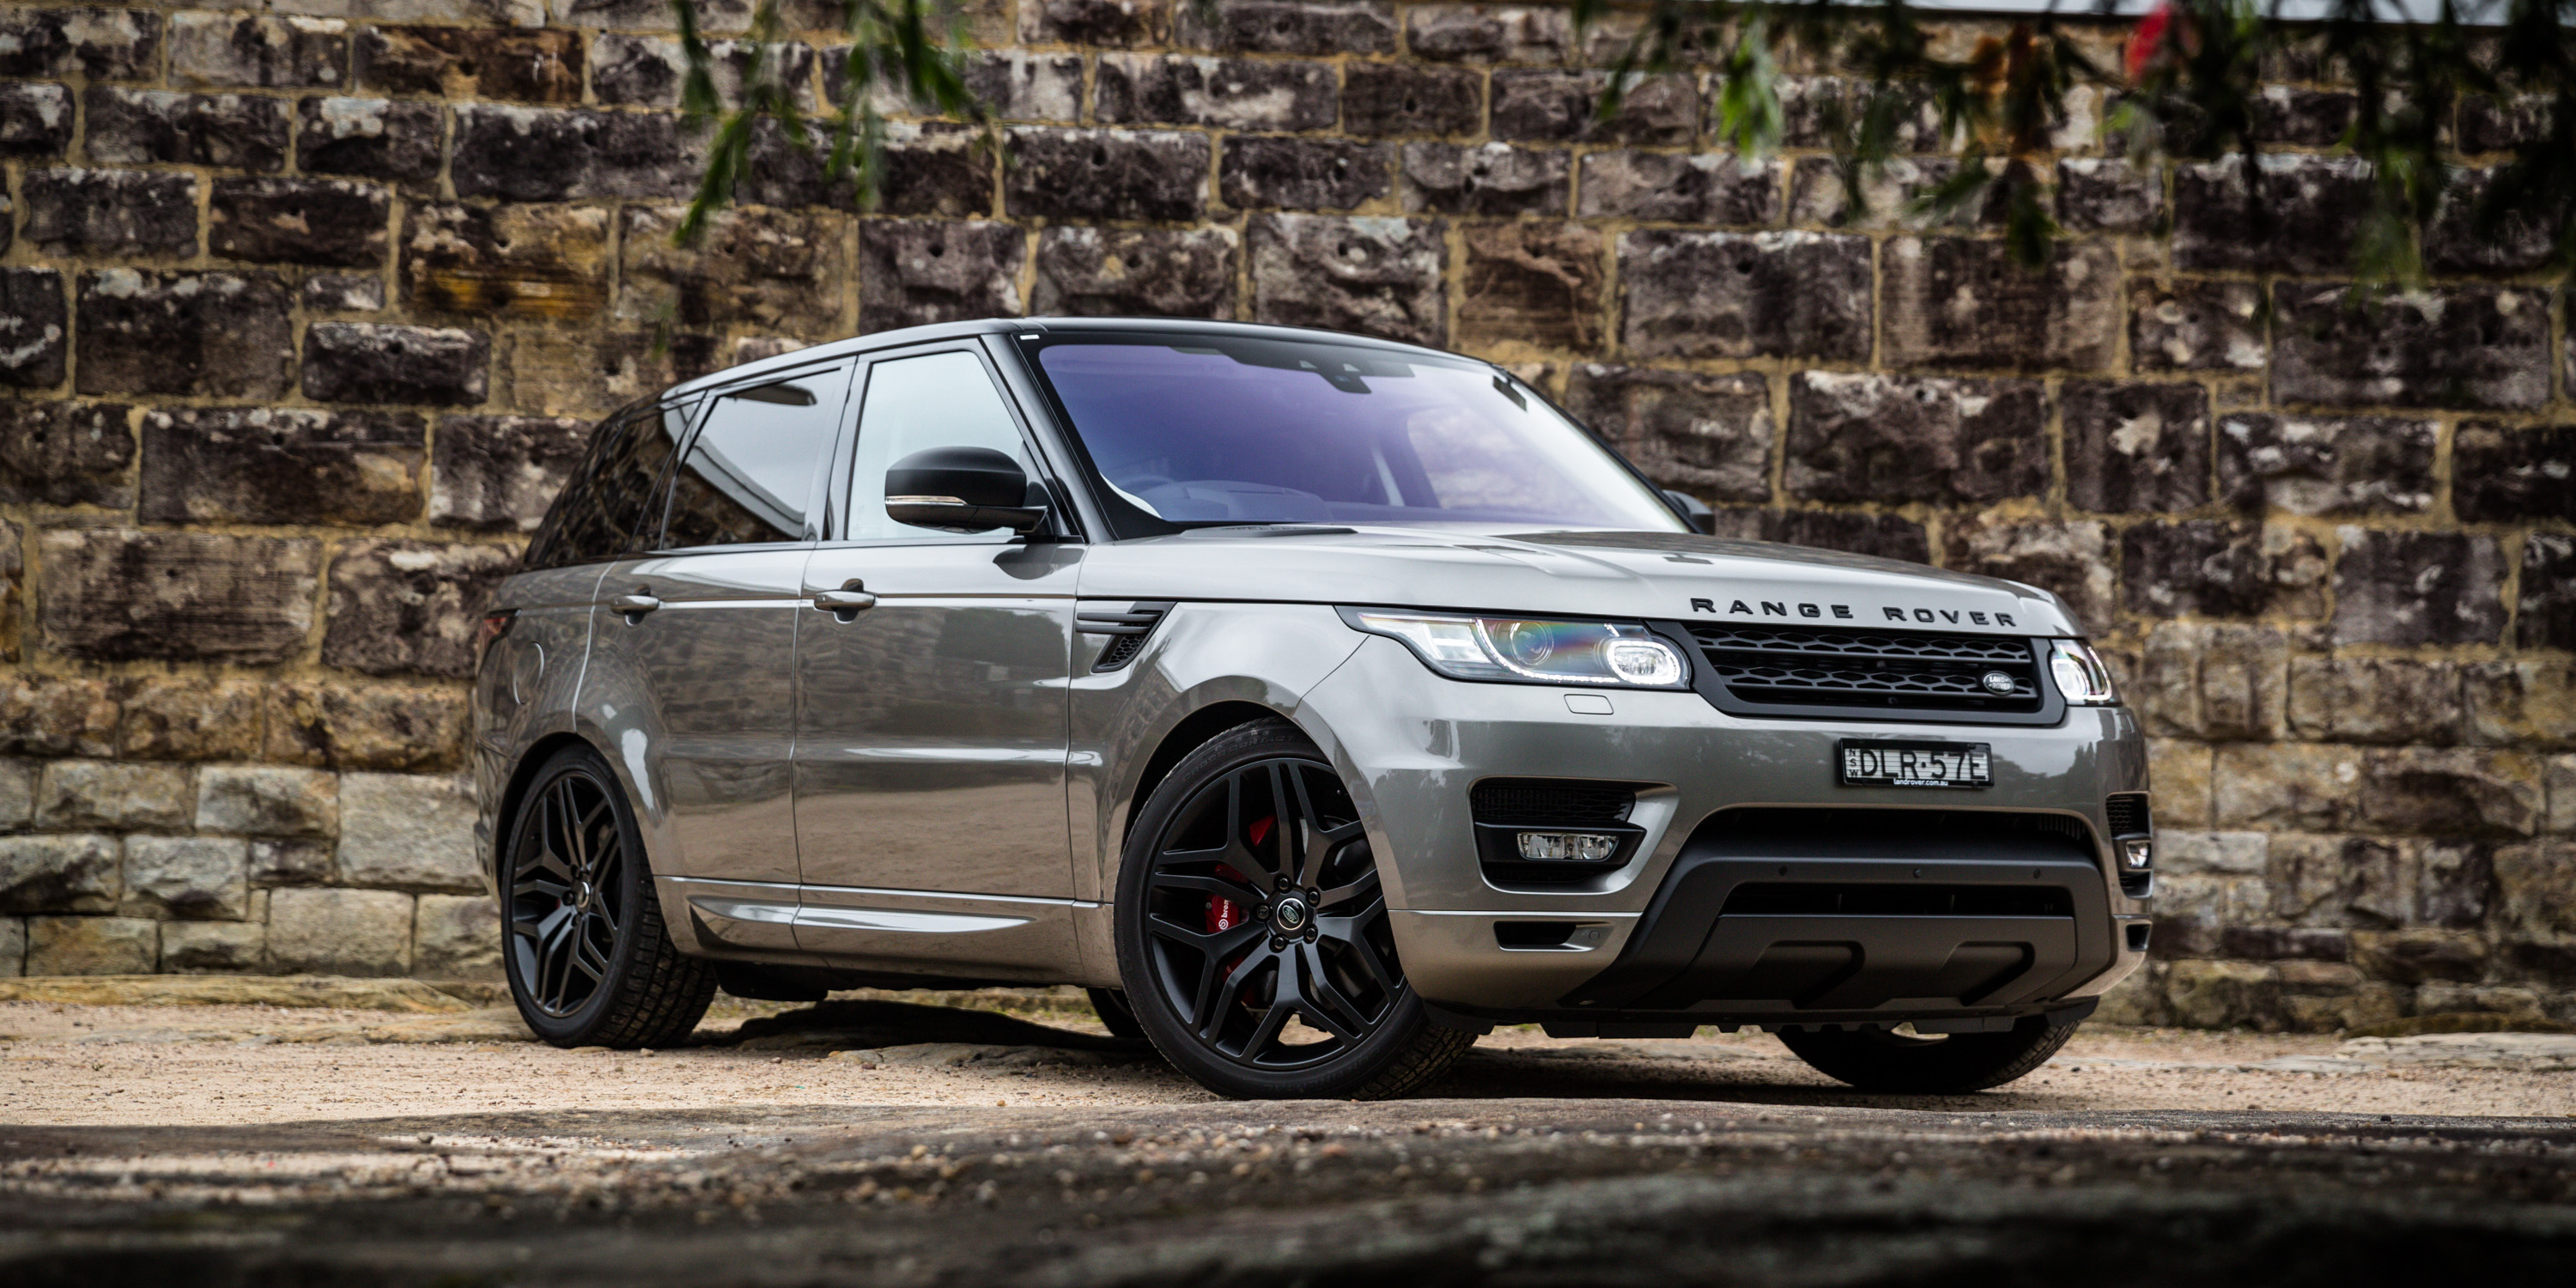 2017 Range Rover Sport SDV8 HSE Dynamic review | CarAdvice